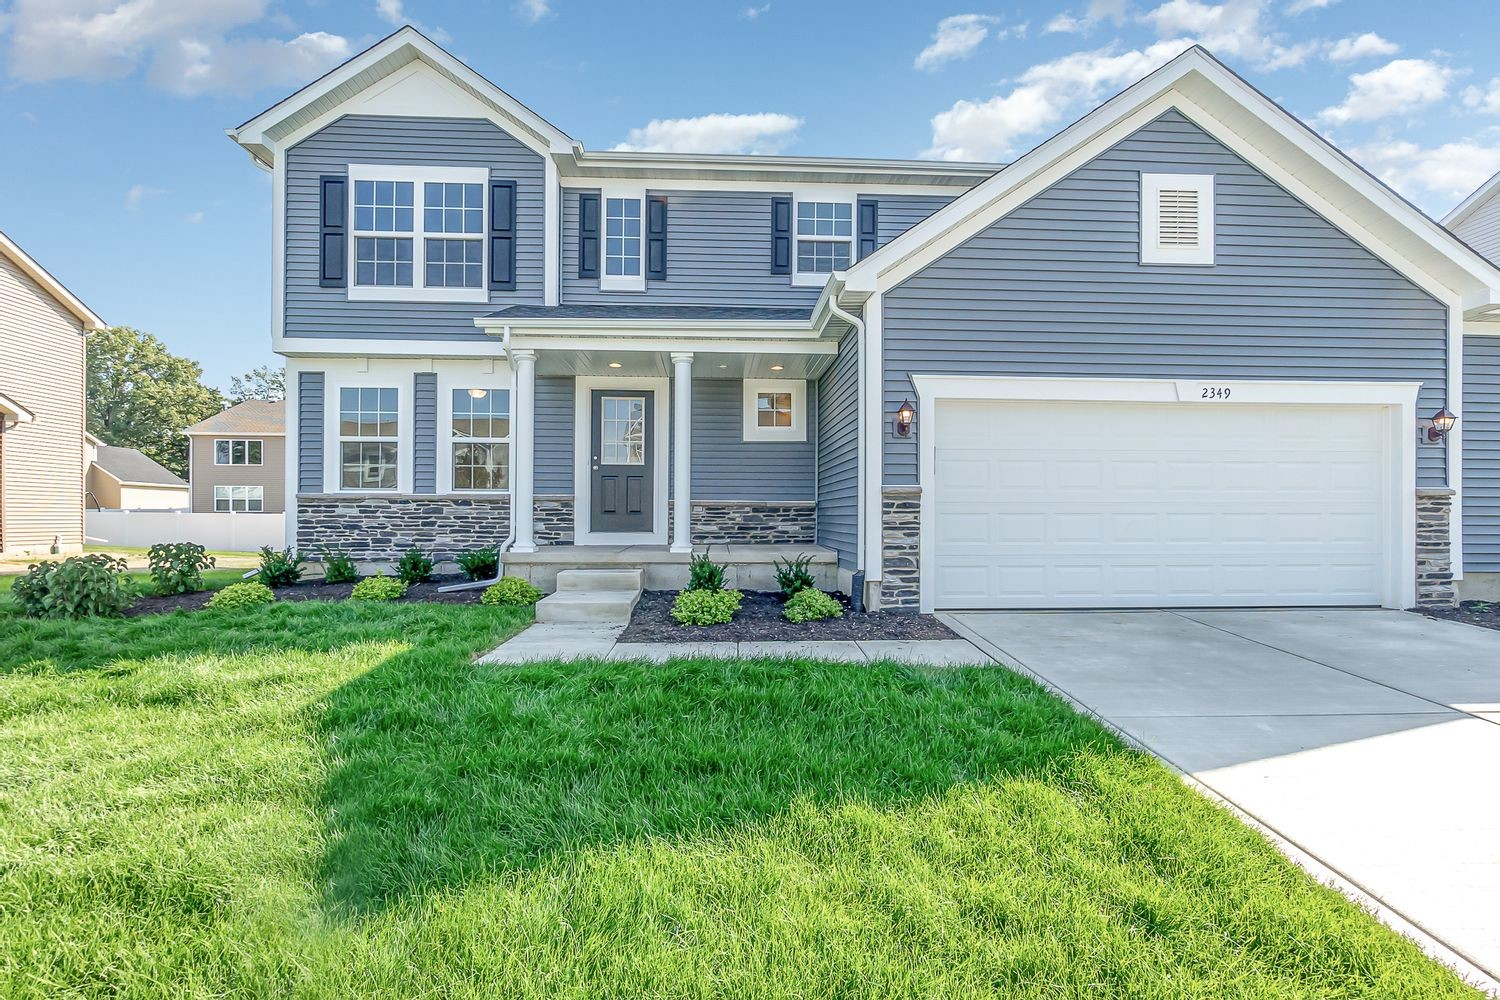 Move In Ready New Home In Dunewood Trails Community